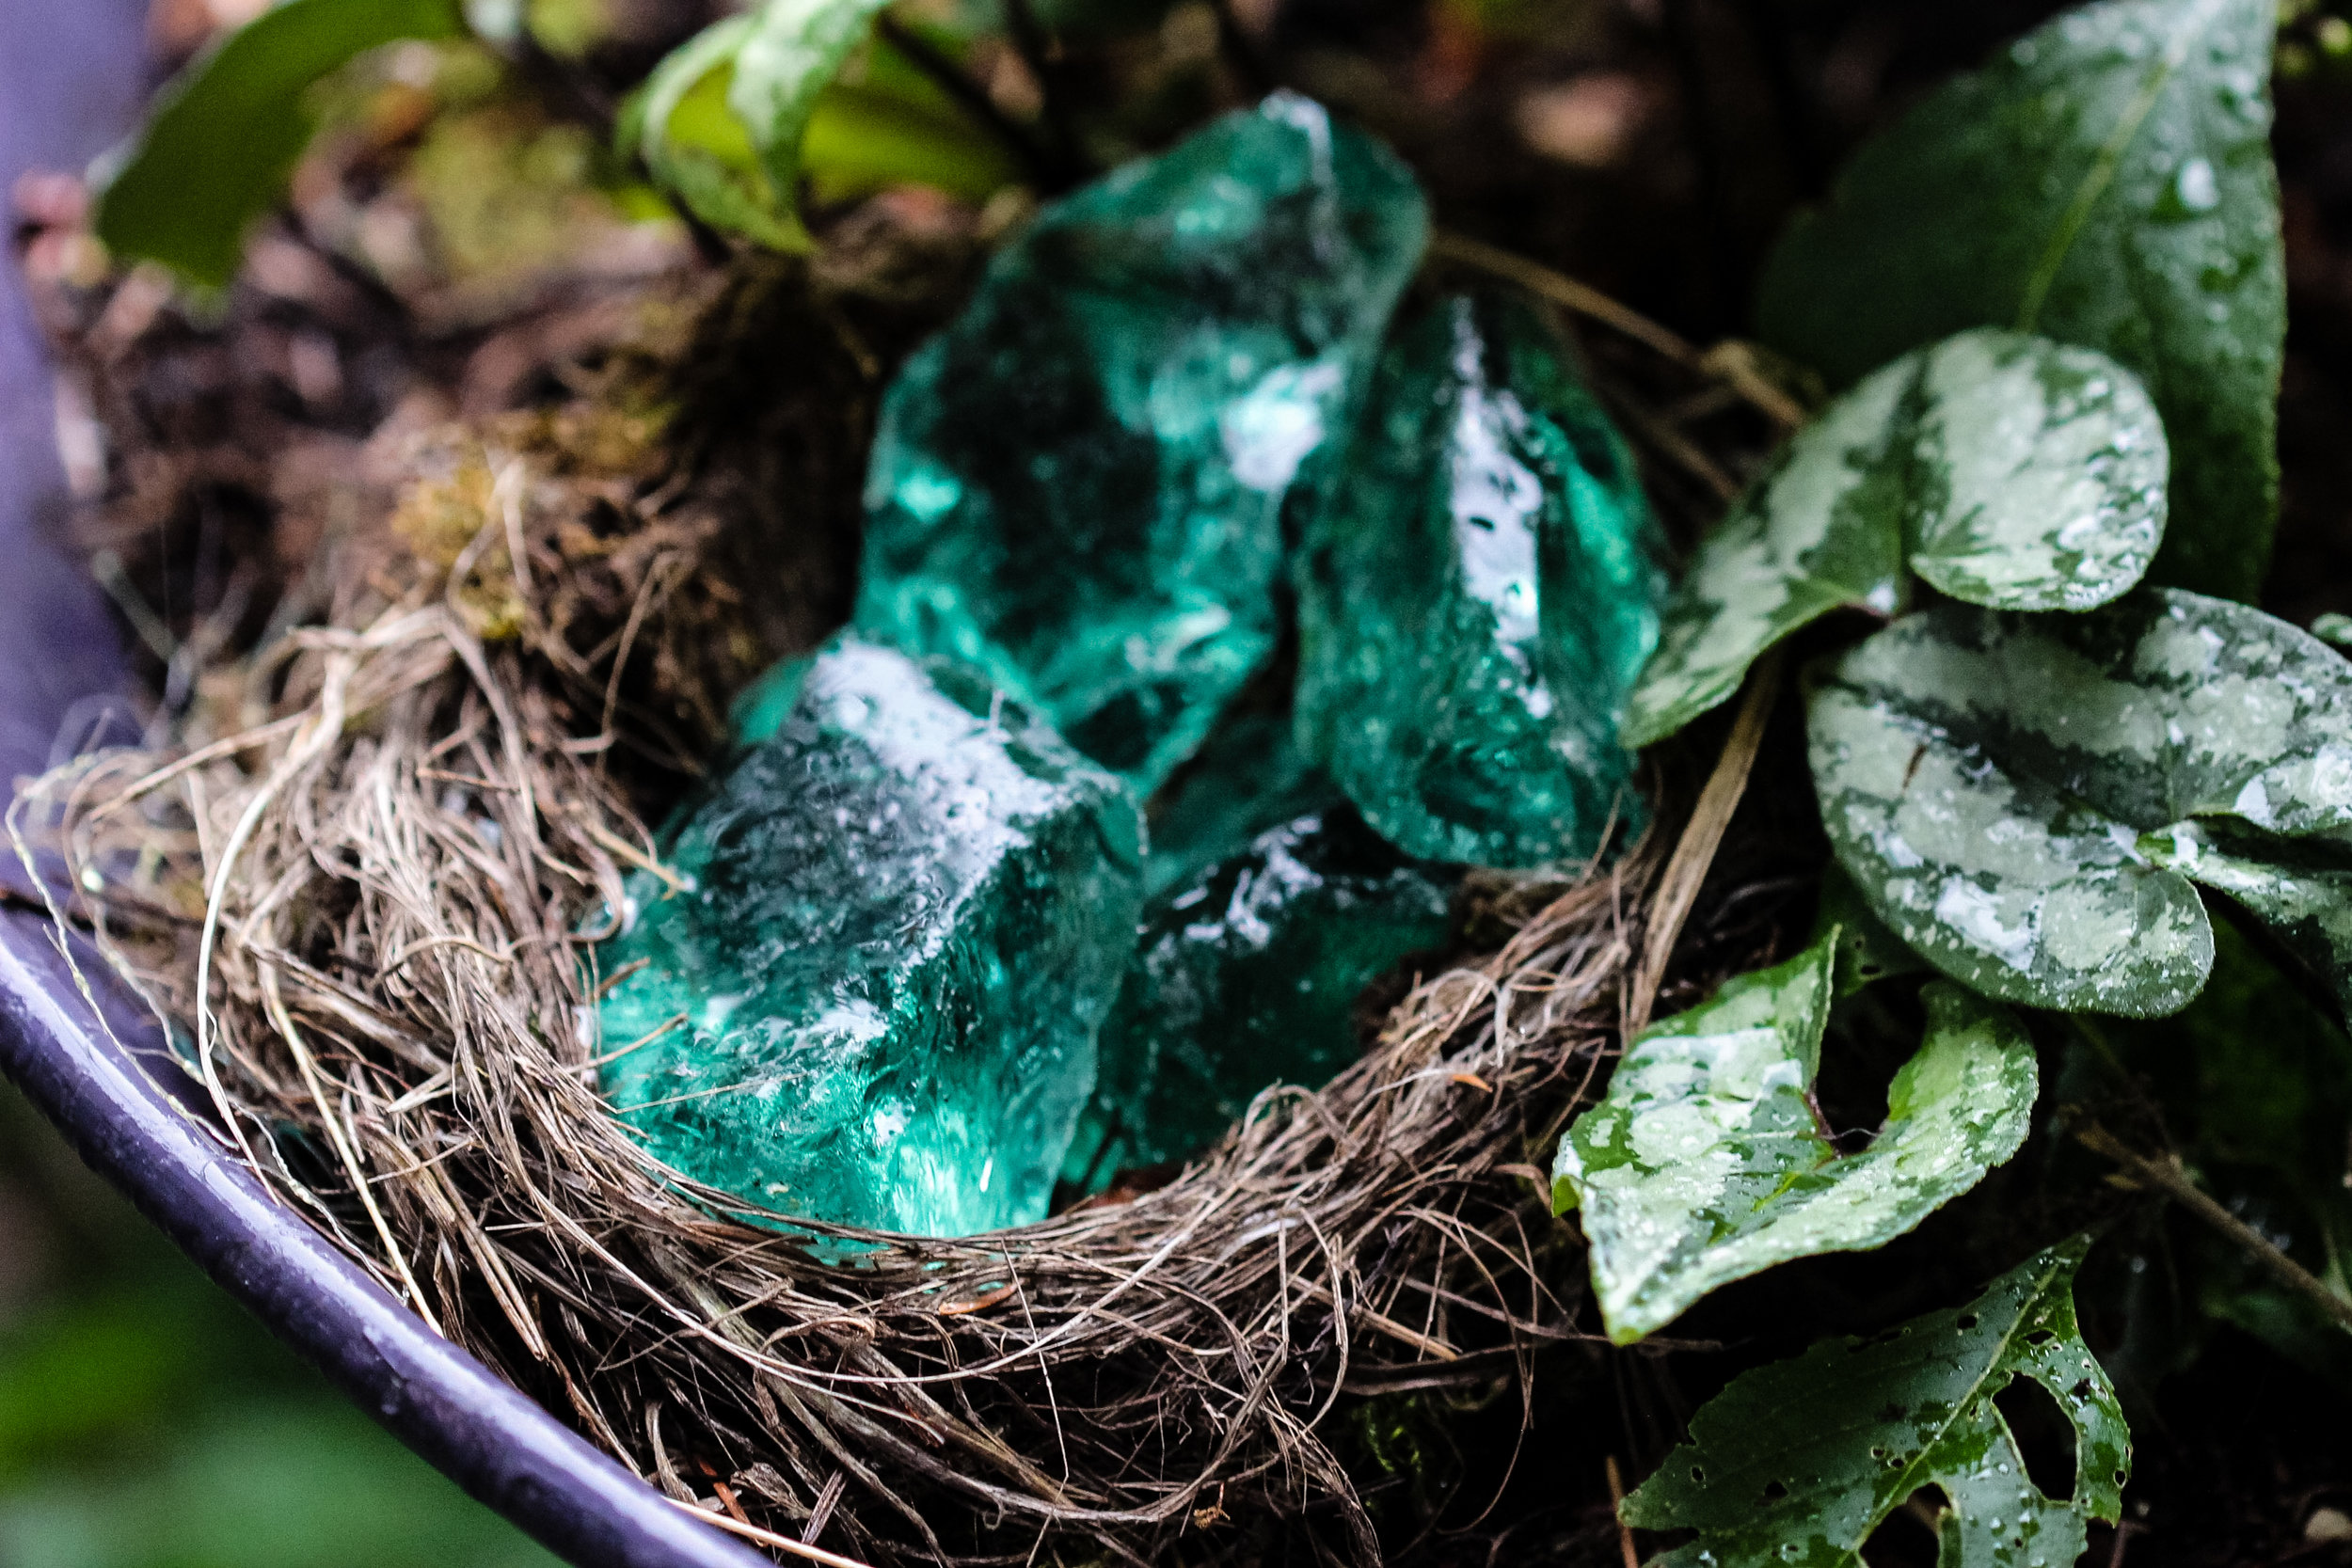 an old bird nest with turquoise glass chunks with Asarum splendens in my light fixture container